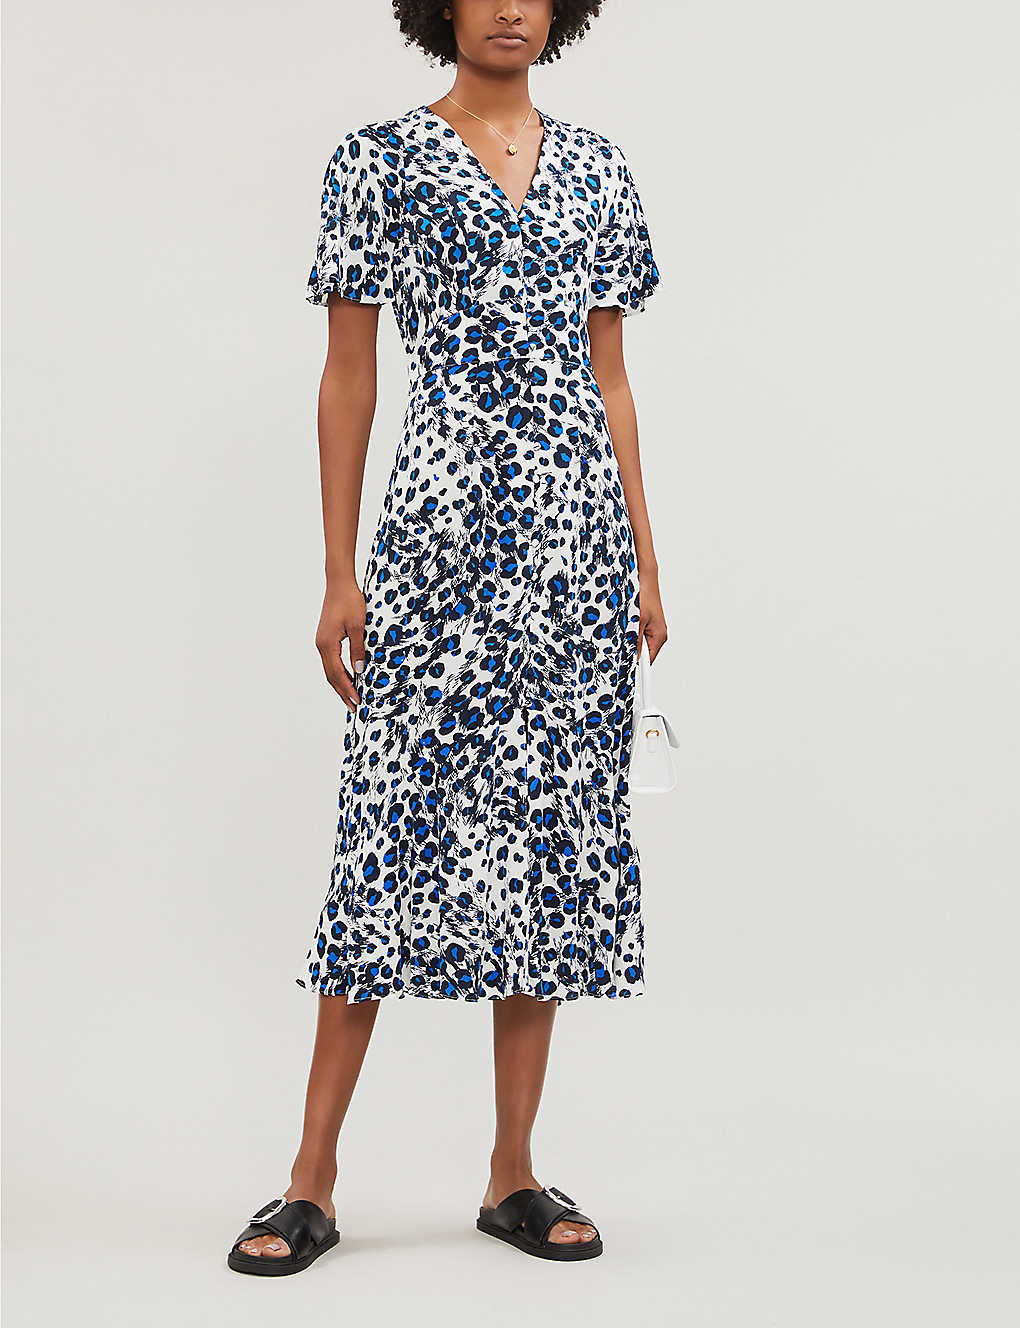 WHISTLES: Graphic leopard-print crepe dress